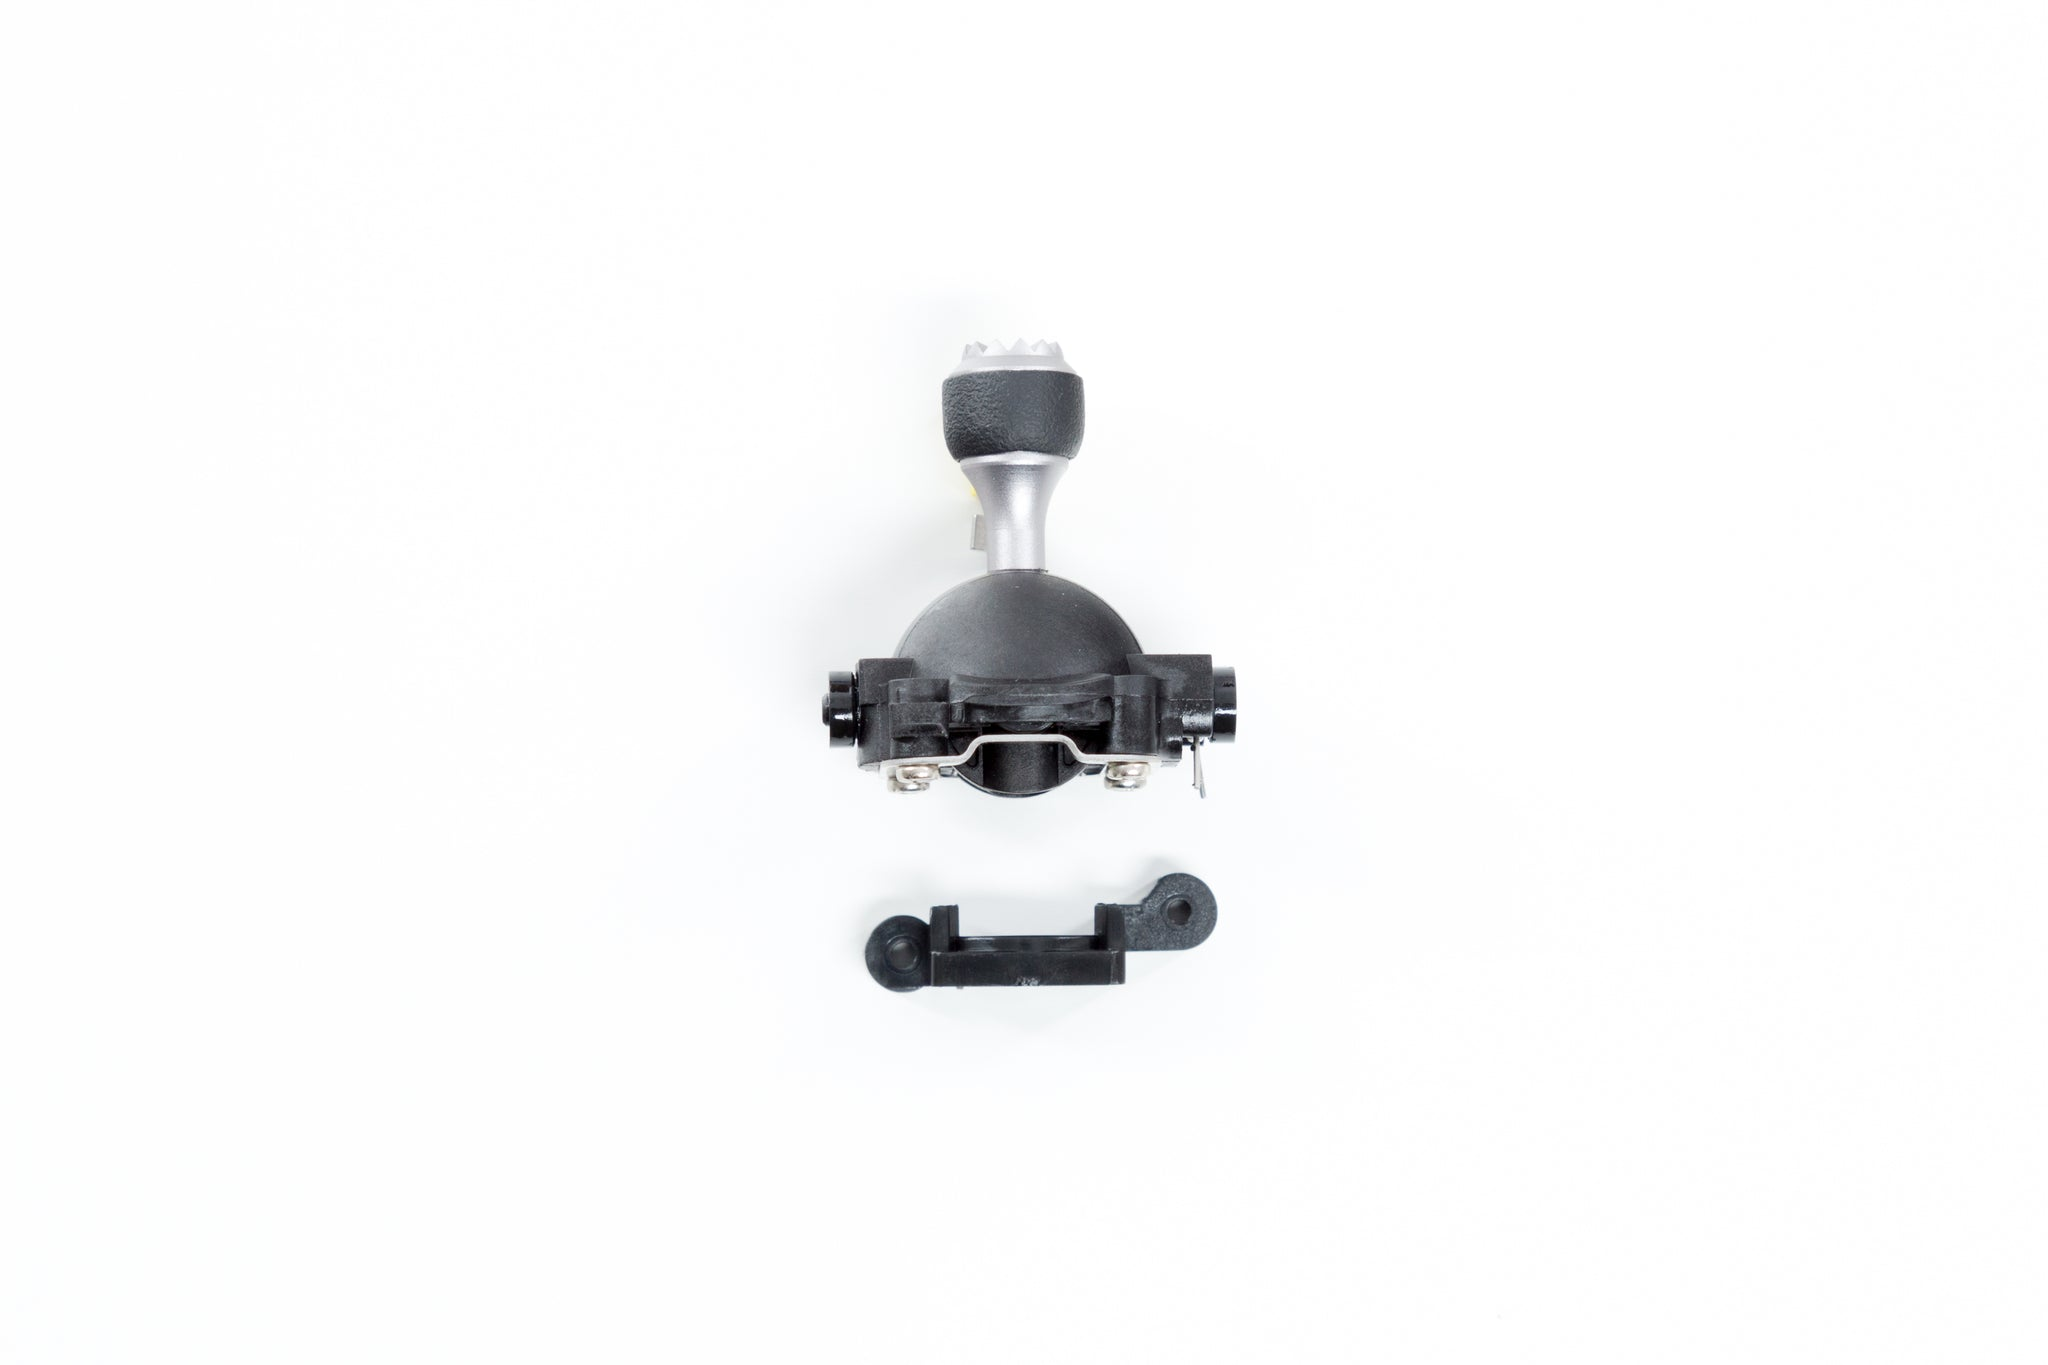 Mavic Pro RC Right Control Stick - Cloud City Drones